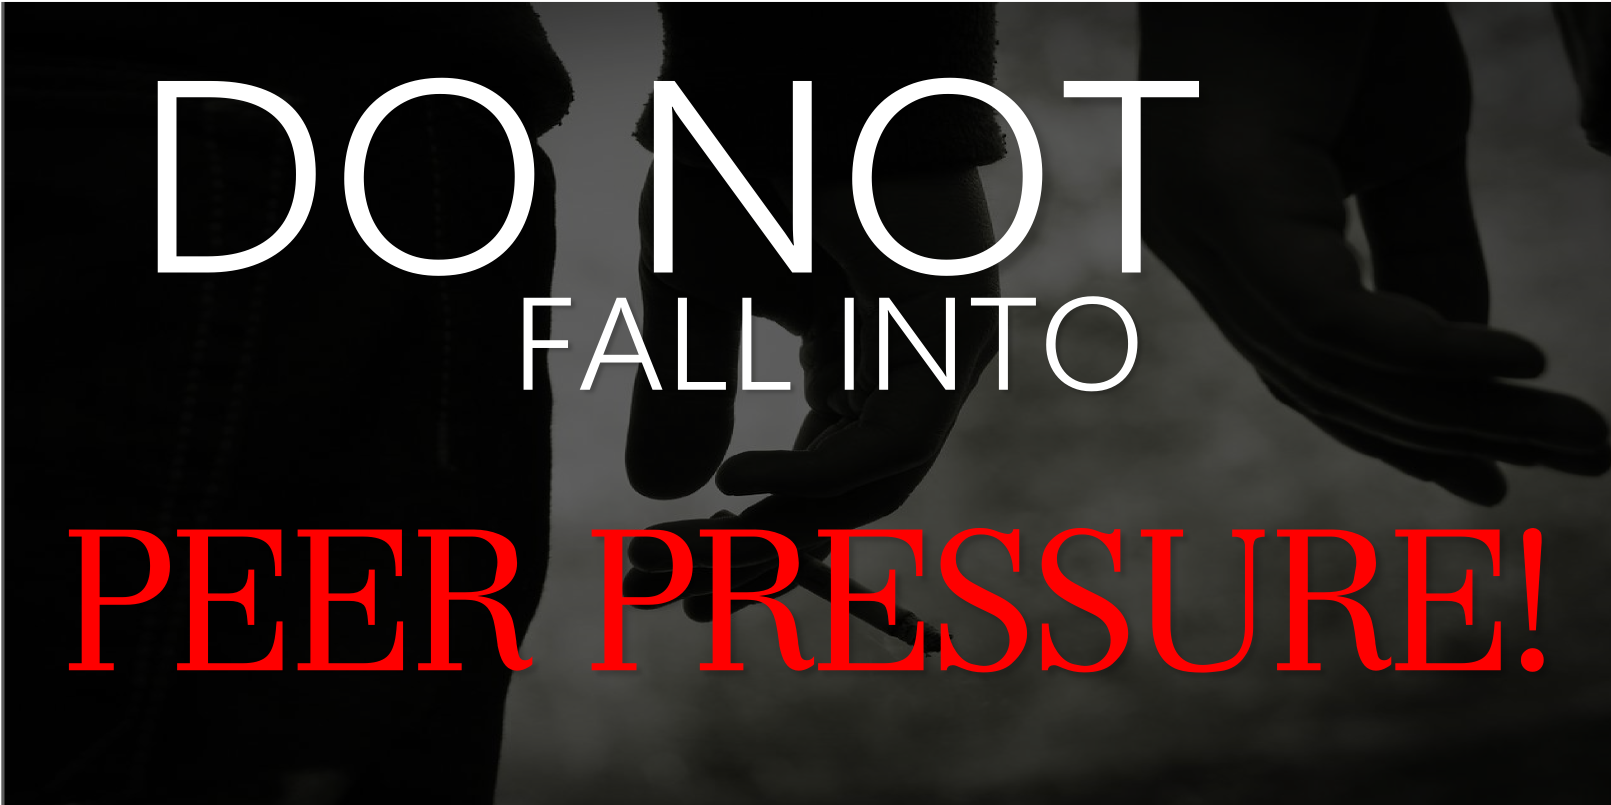 Peer pressure and how to deal with it - The Muslimah Network